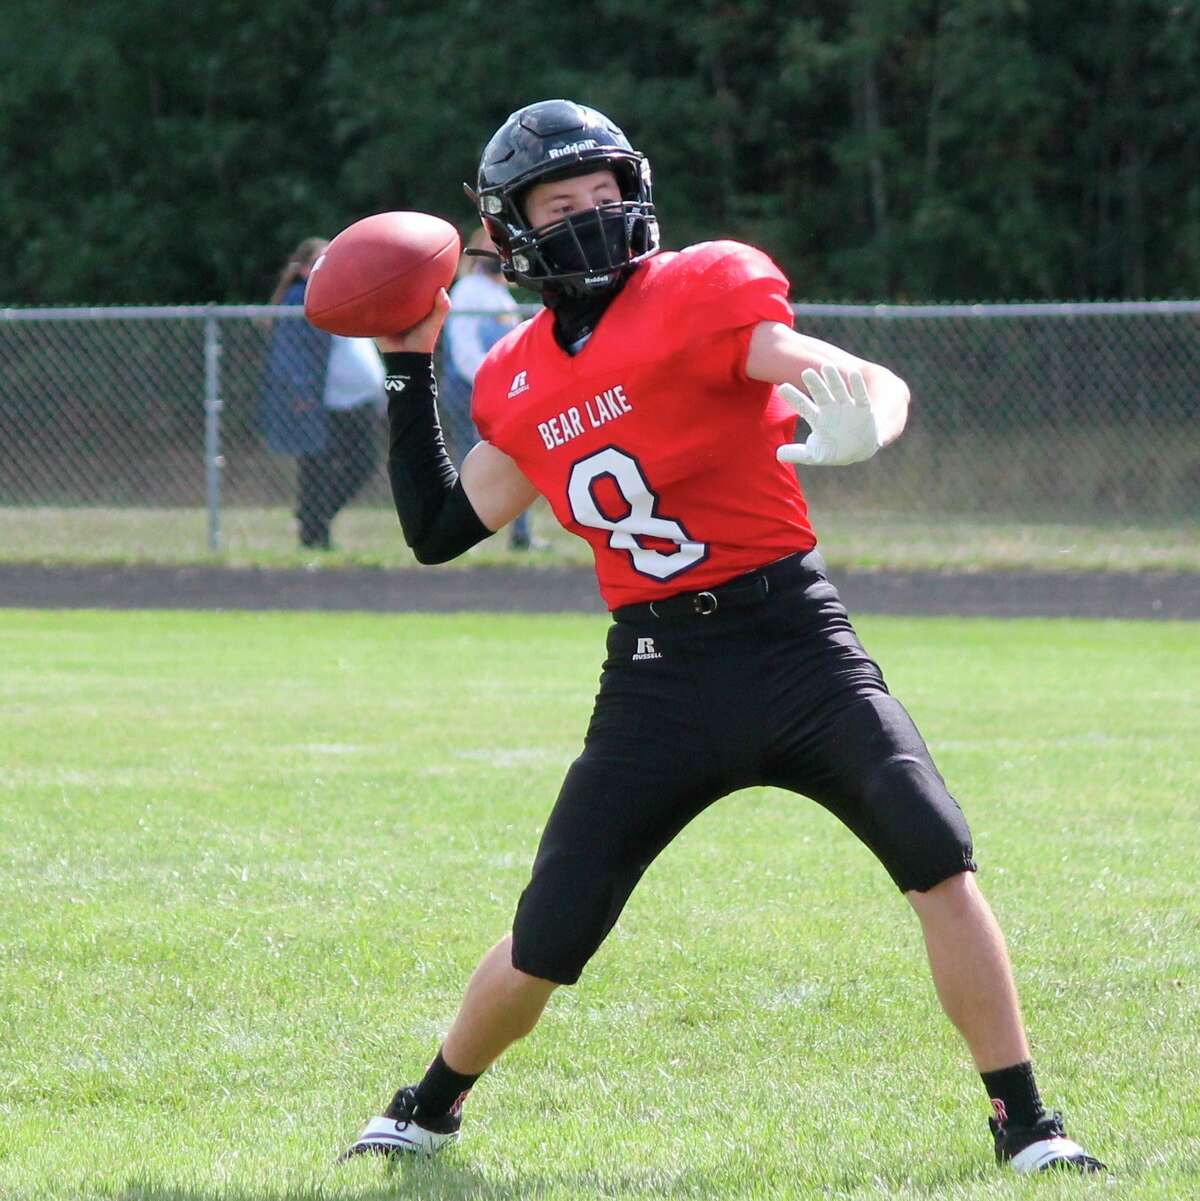 Football players, such as Bear Lake's Tate Aultman (pictured) had to persevere through uncertainty about when and if they would have a season until mid-September. (News Advocate file photo)